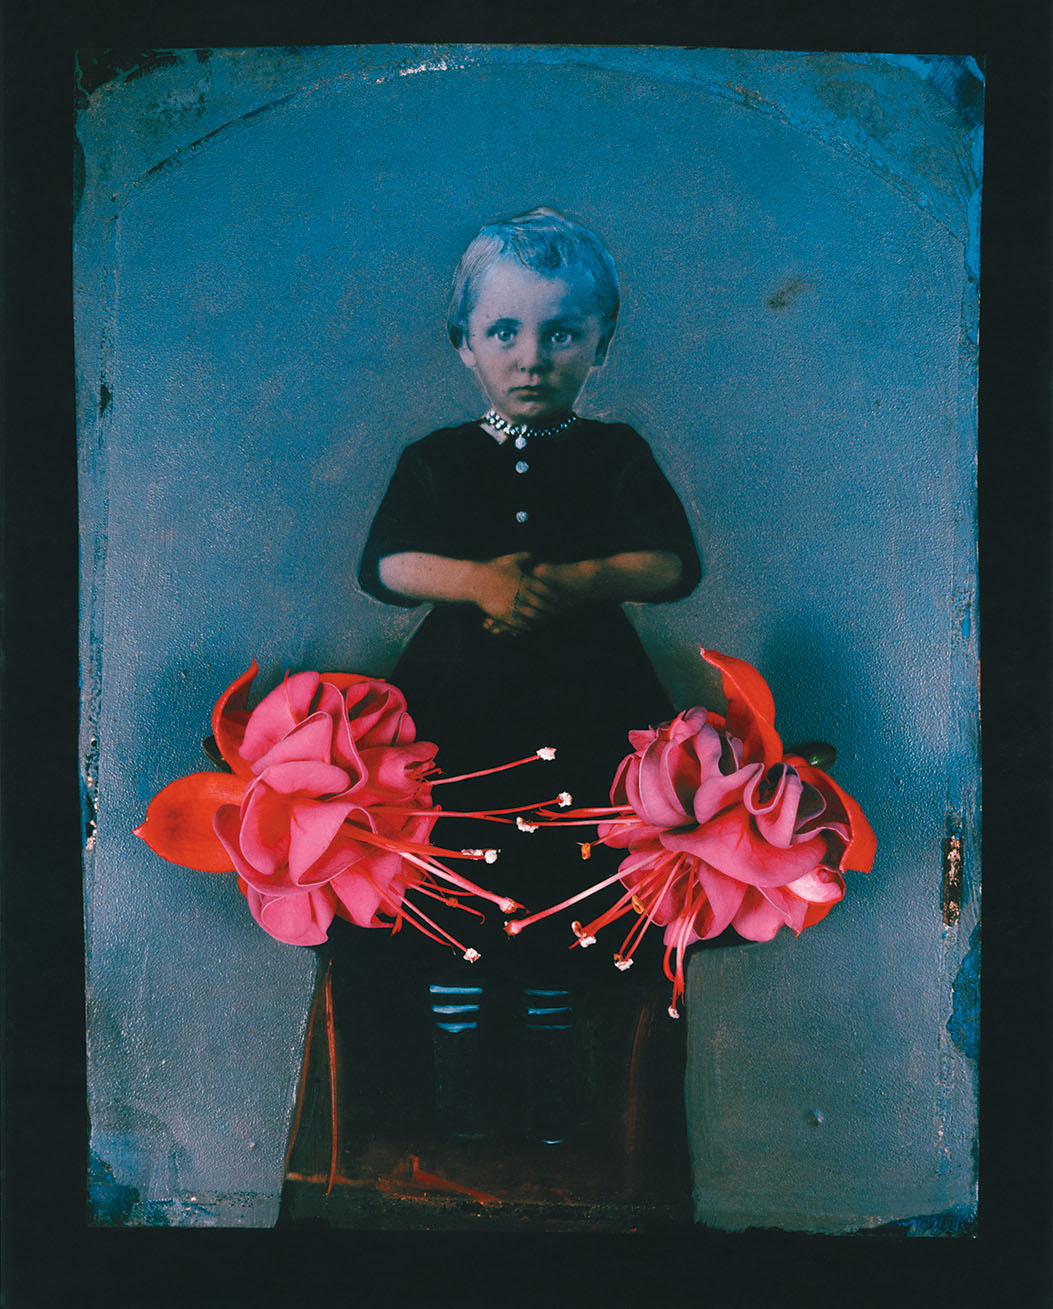 Two lush tropical flowers sit on an old fashioned portrait of a preschool-aged child